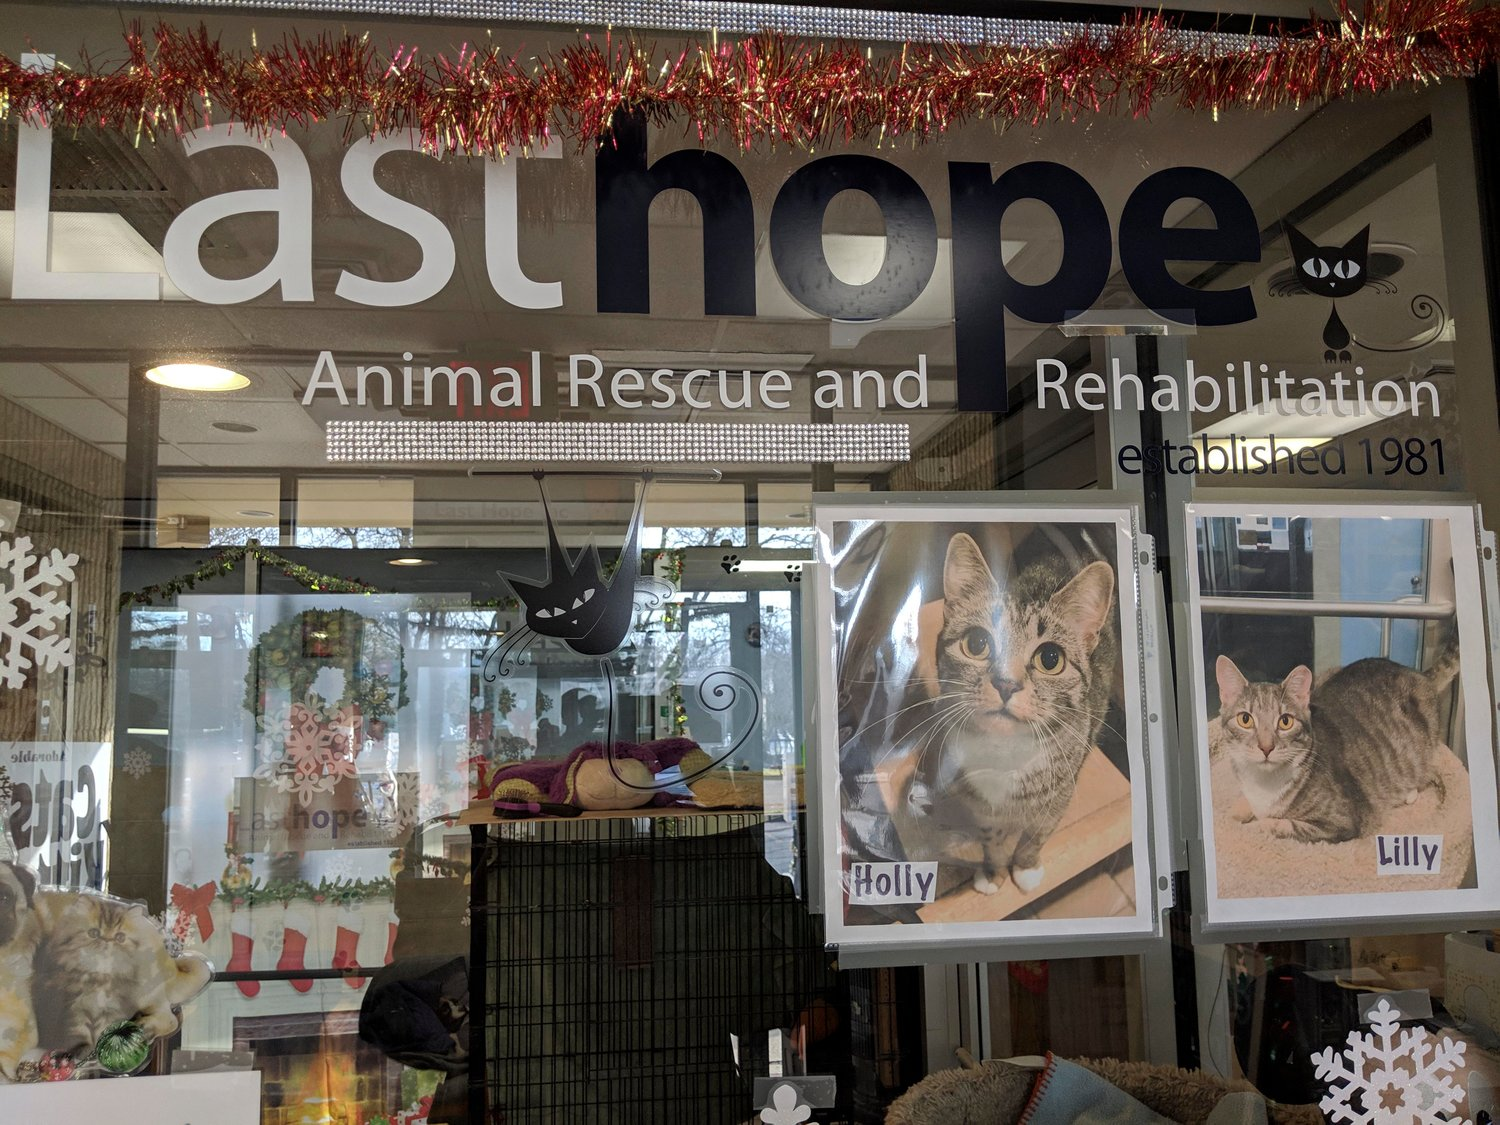 Last Hope Animal Rescue in Wantagh is in its 38th year.